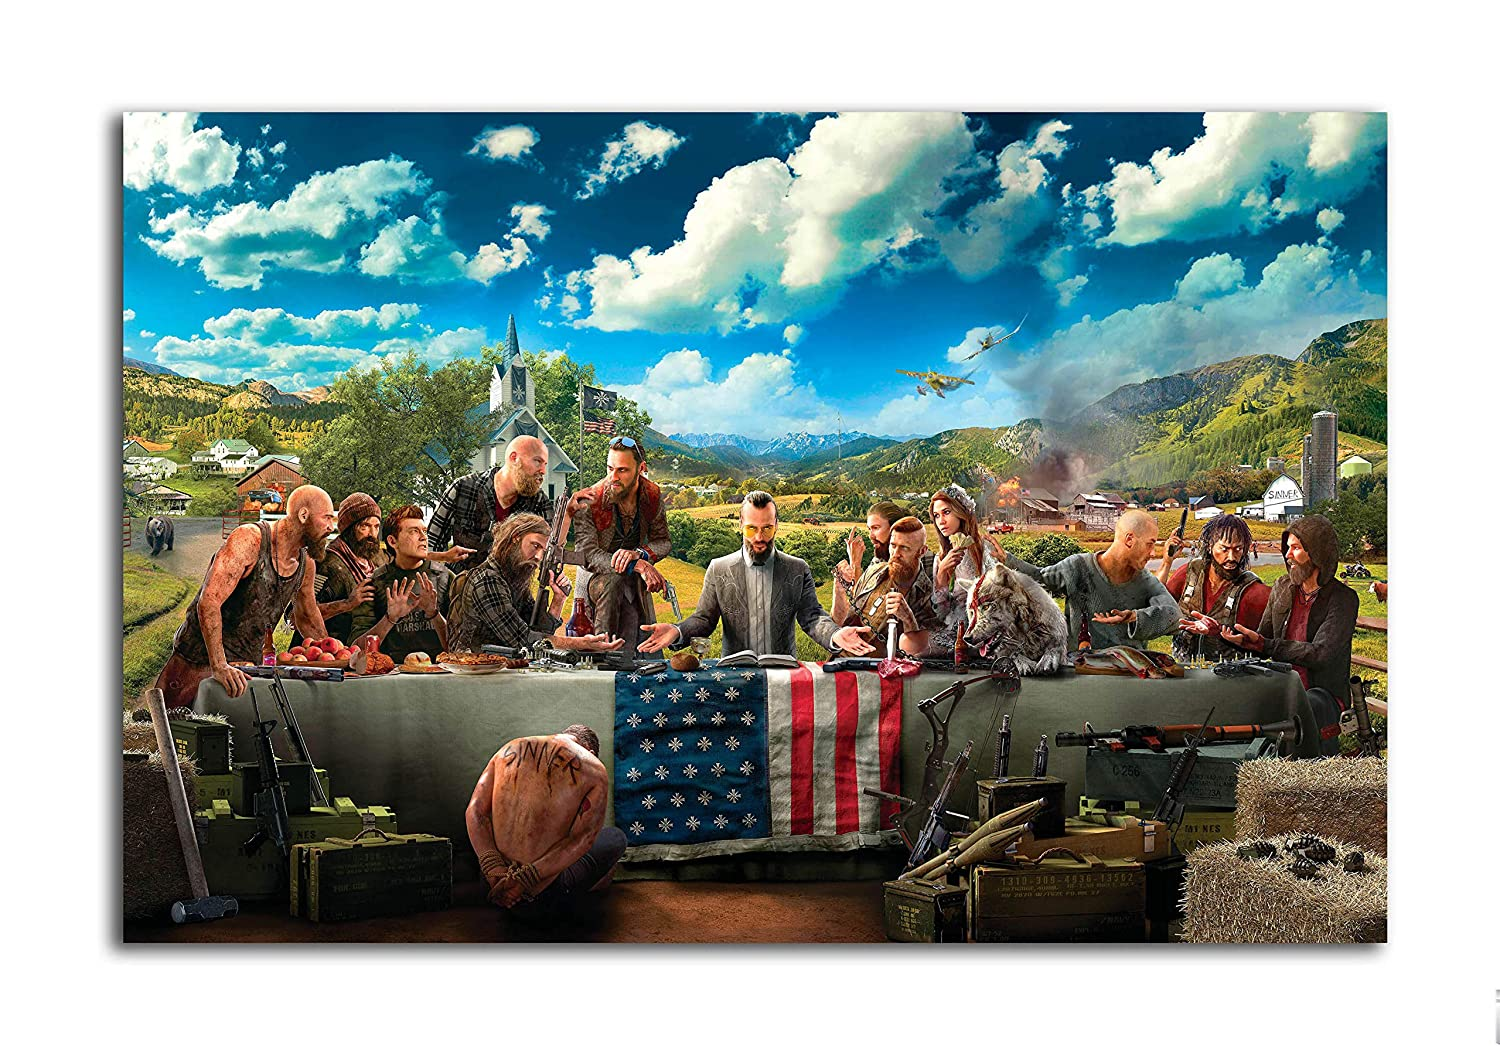 Tamatina Gaming Poster Far Cry 5 Cover Poster For Home Decor Large Size Poster Hd Quality 36 Inches X 24 Inches 92 Cms X 61 Cms Amazon In Home Kitchen